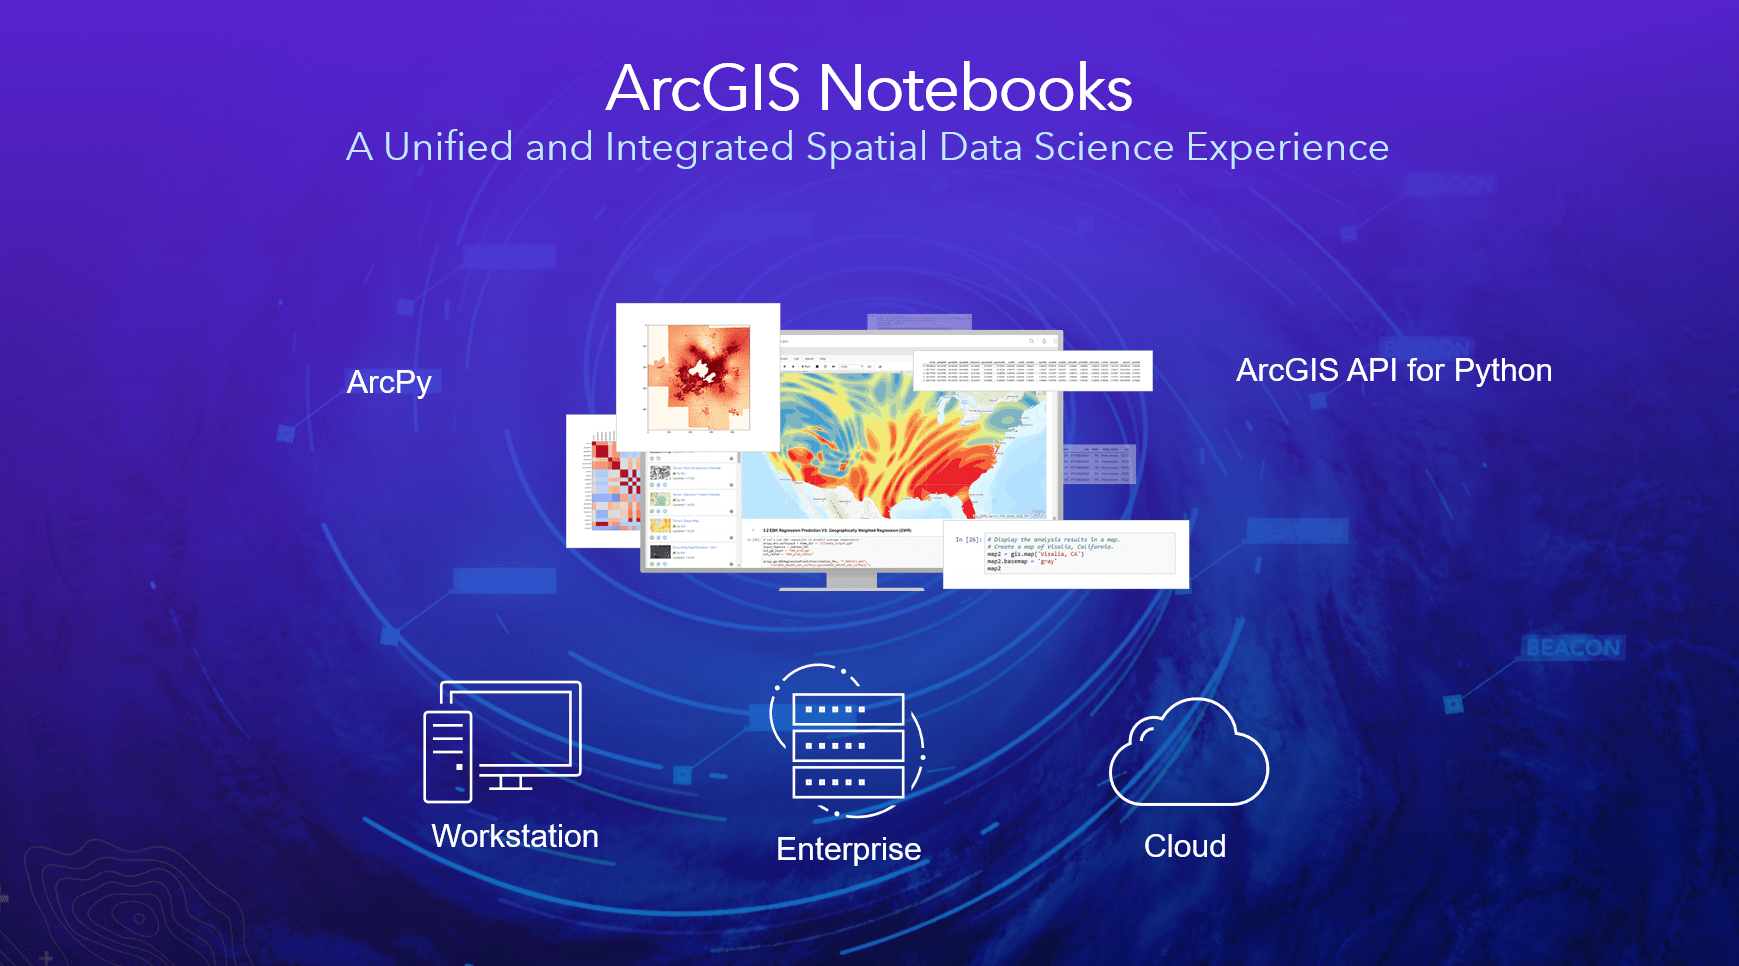 ArcGIS Notebooks can be deployed on premise, in the cloud or on your desktop.